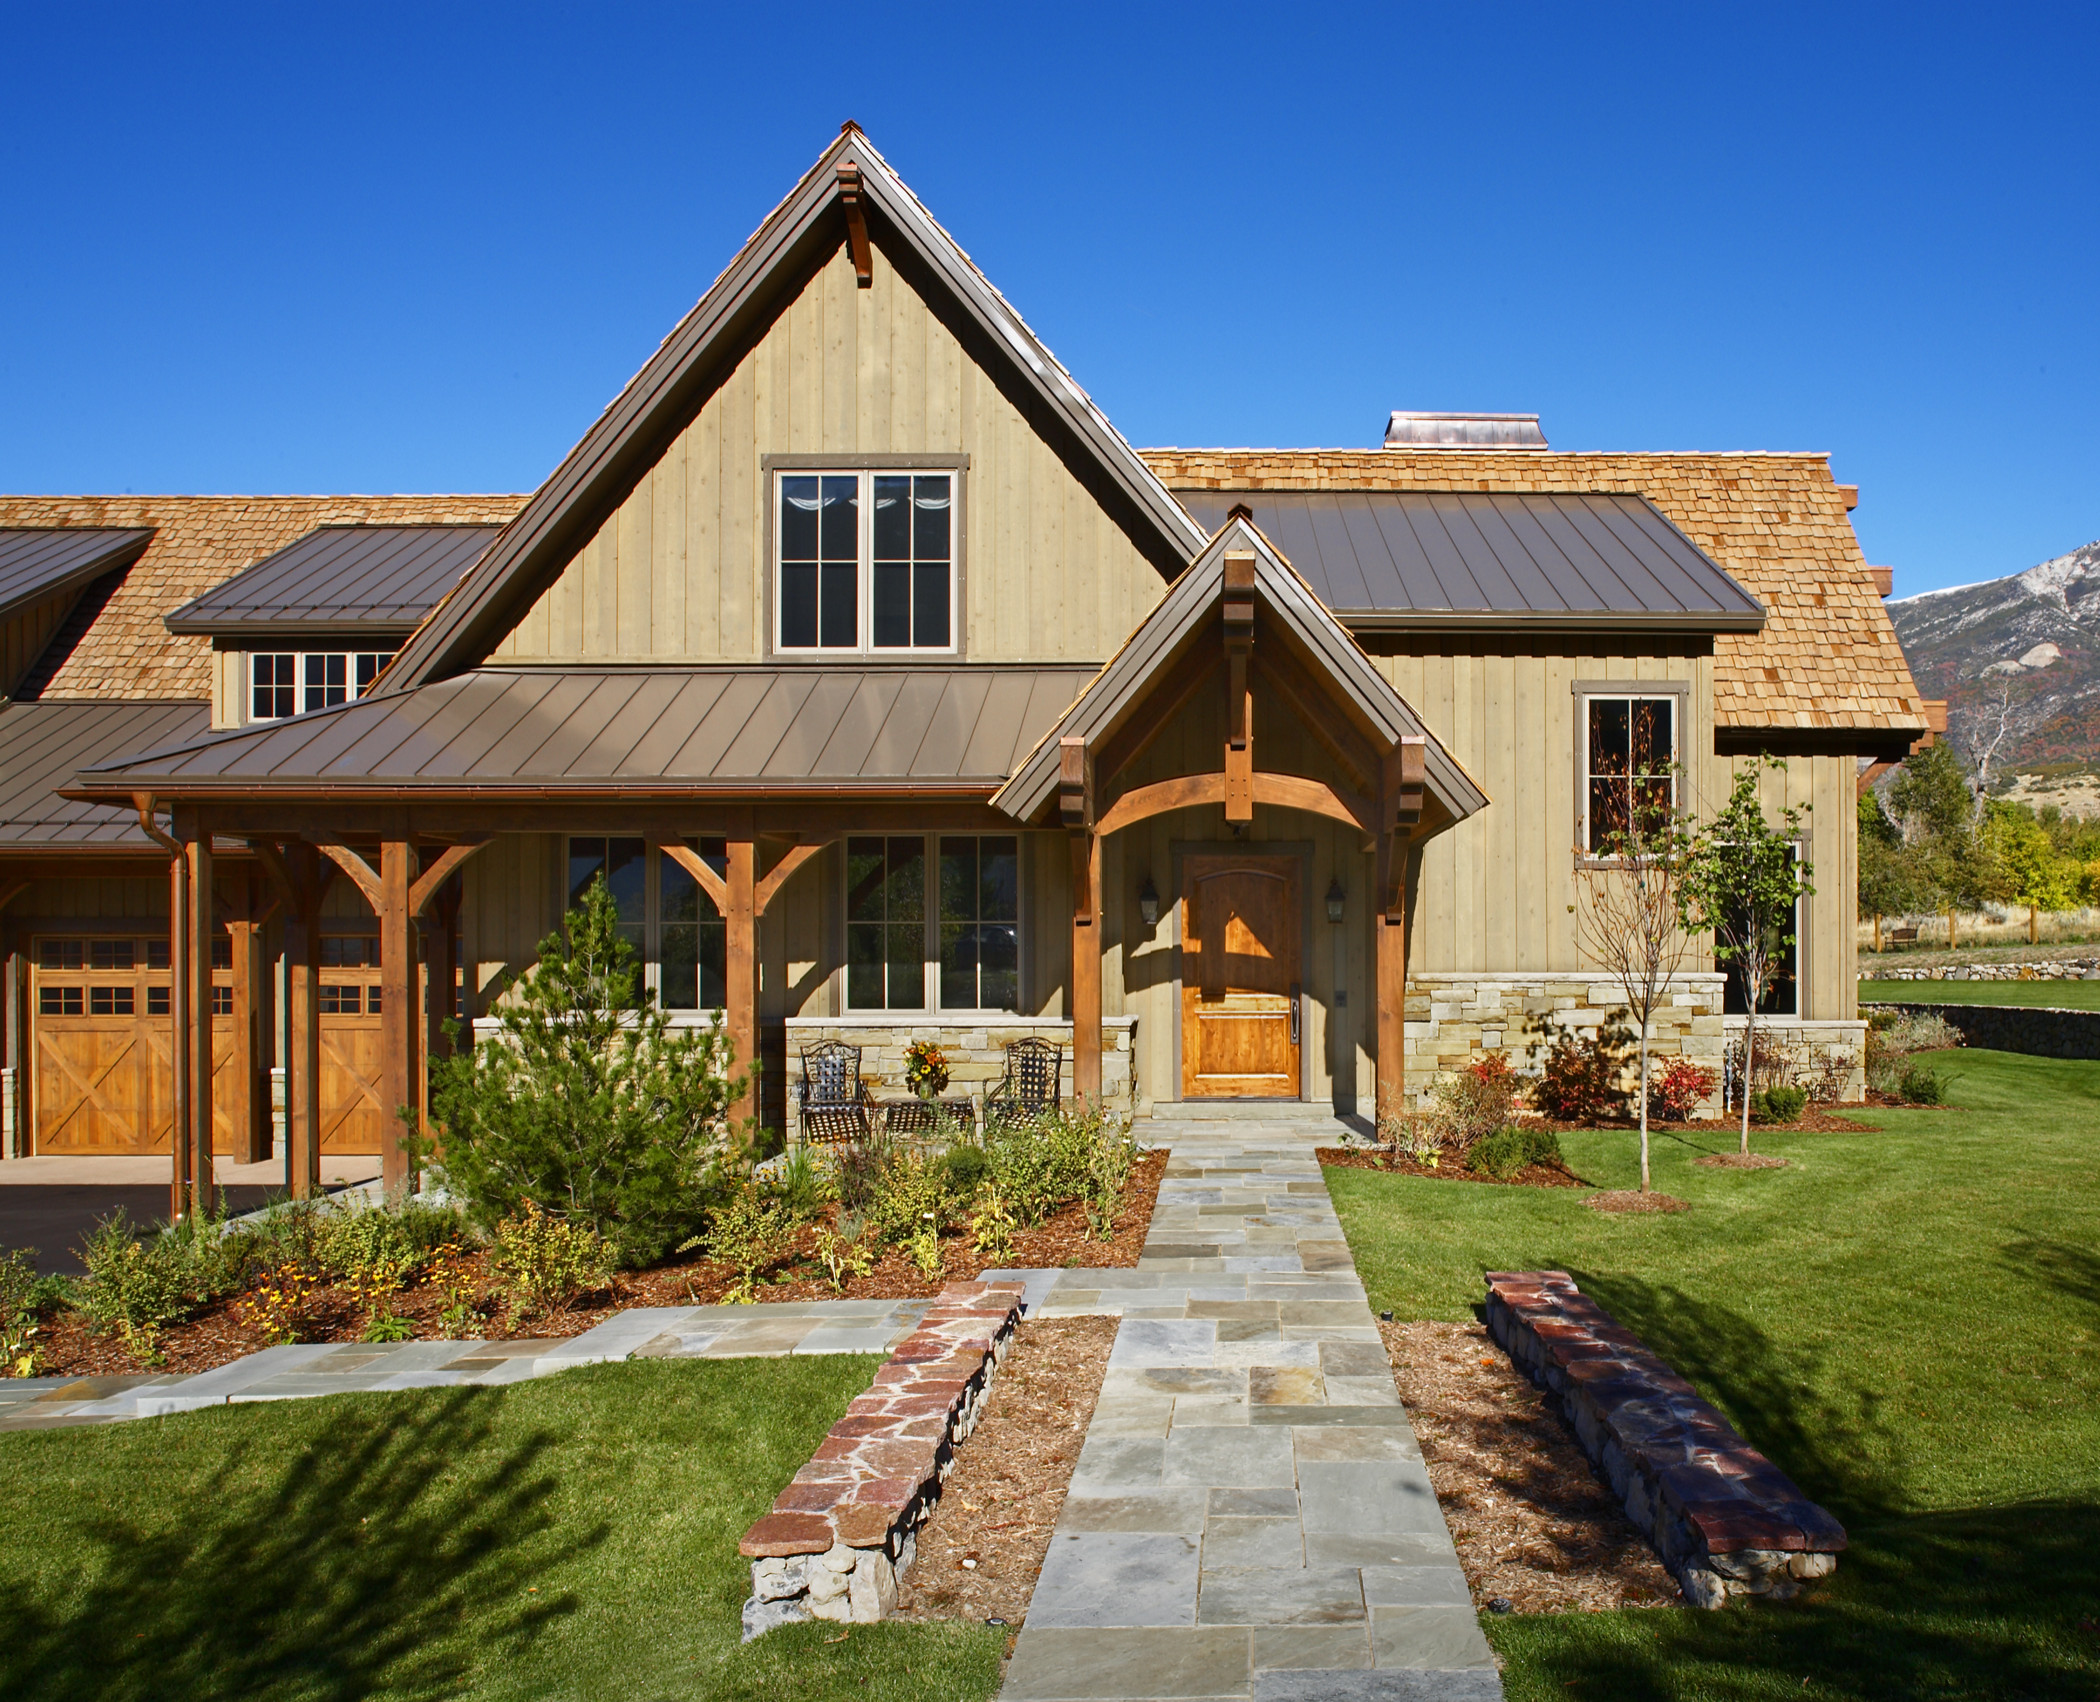 Front porch ideas for ranch style homes beams bench chimney corbels covered entry